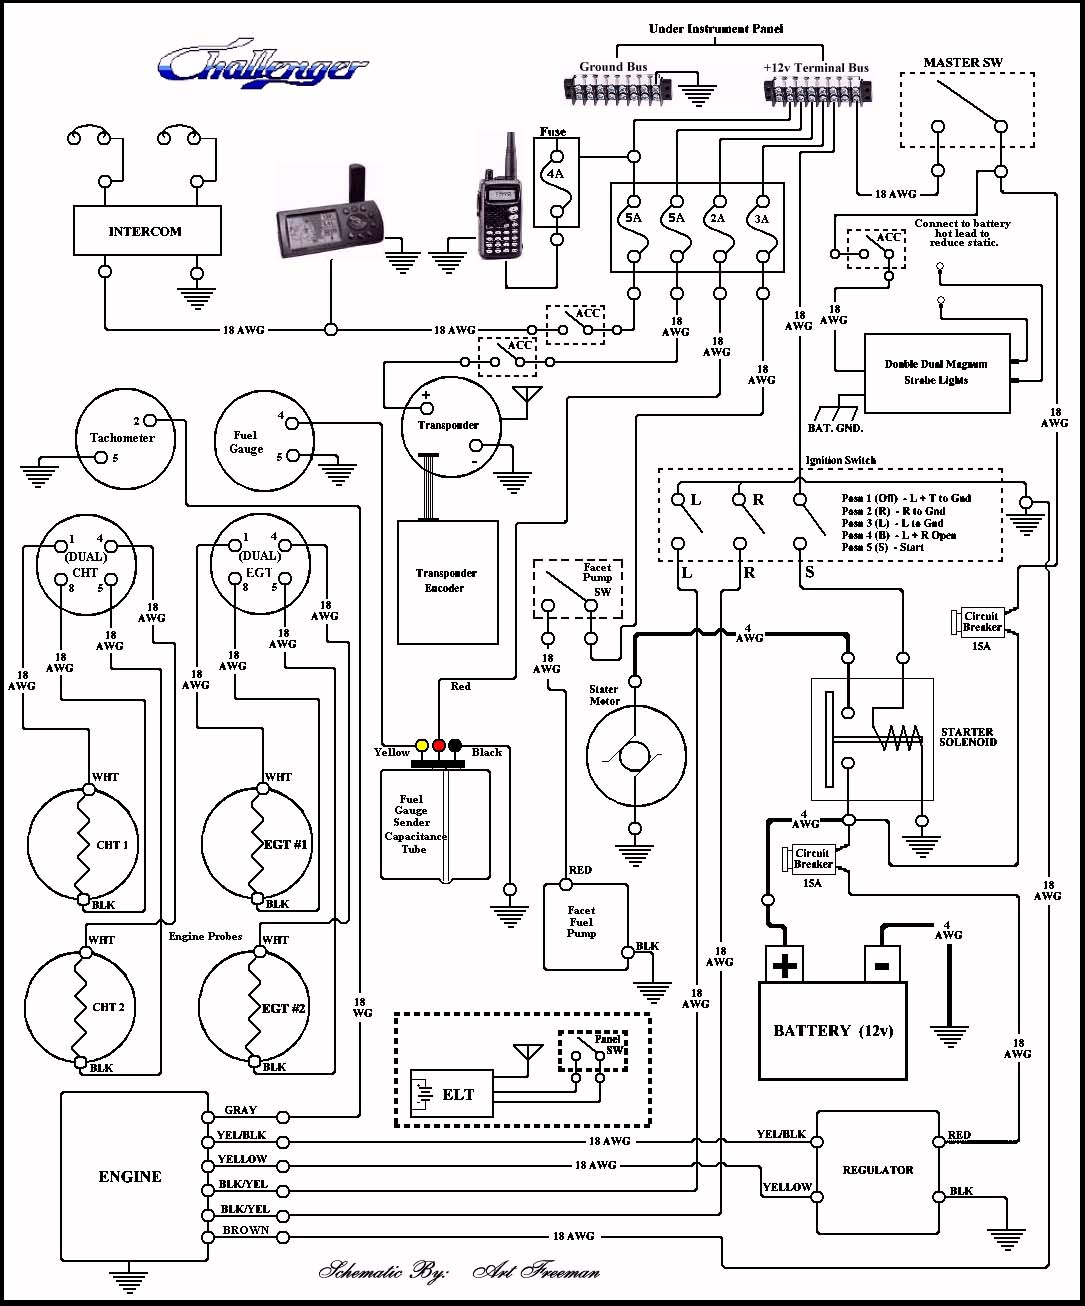 Basic Wiring Of Fuselage Instruments And Power Source